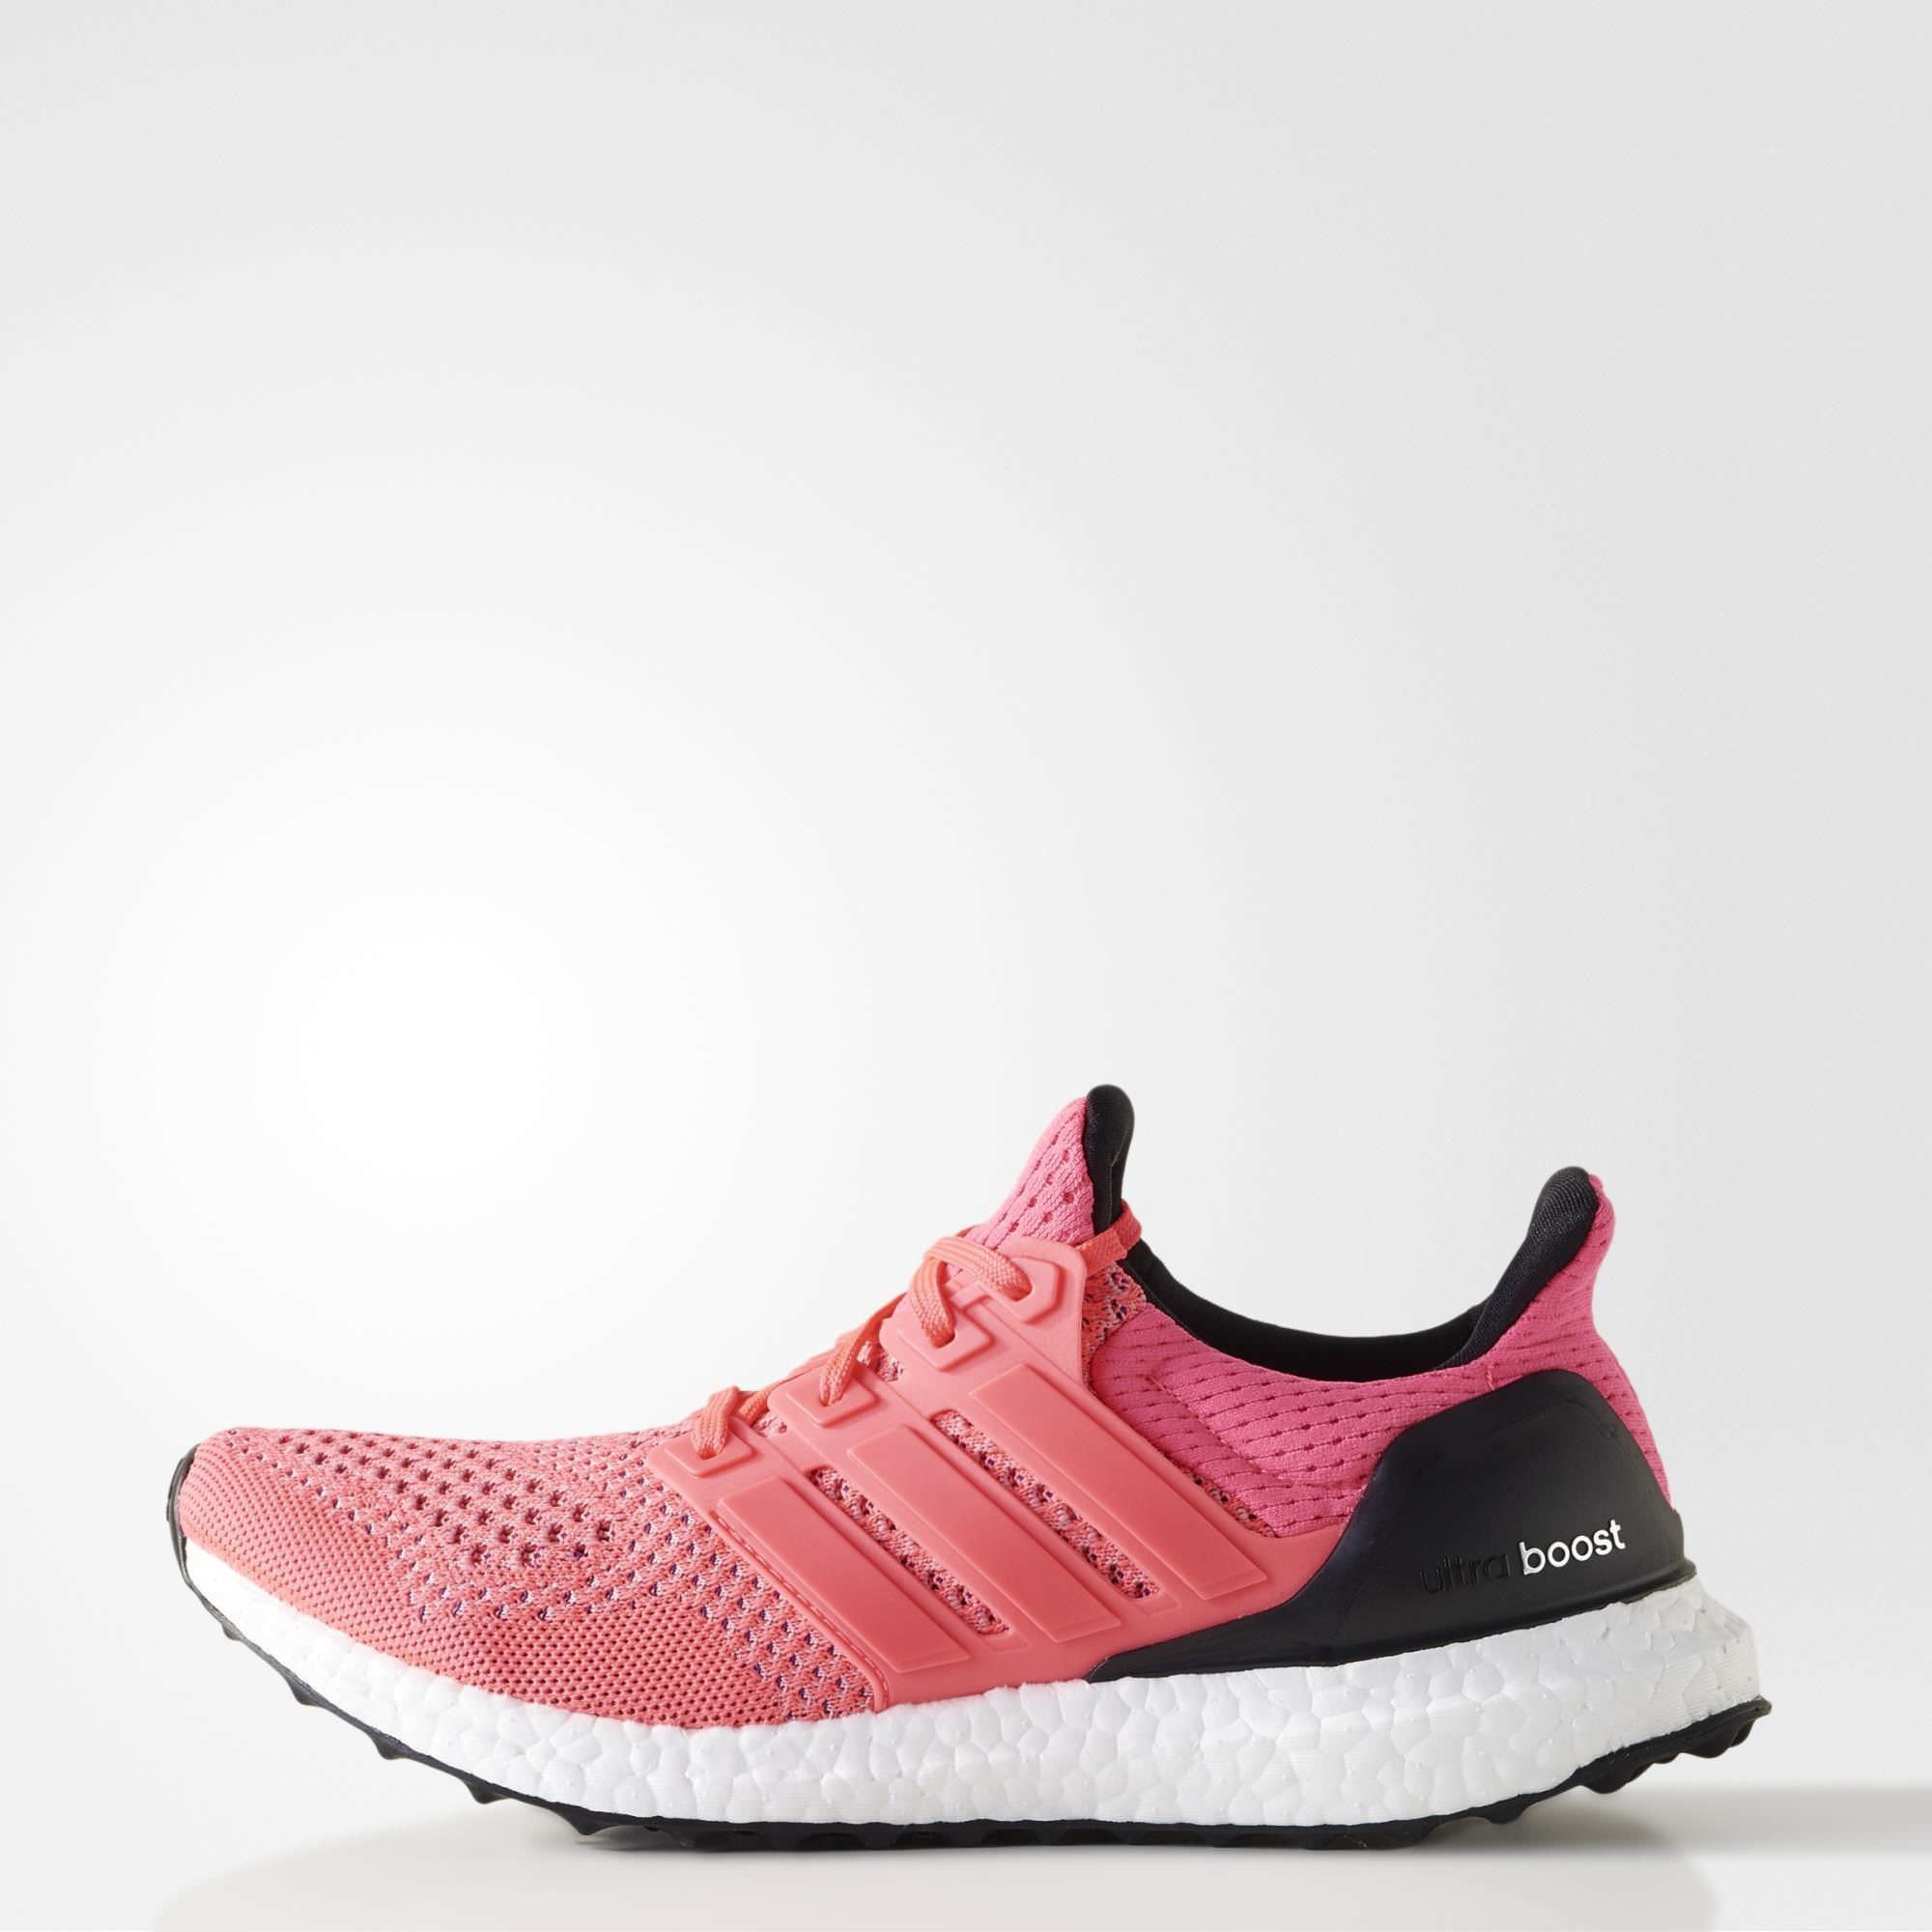 e08712d20d05 Adidas Womens Ultra Boost Running Shoes - Flash Red Core Black -  Tennisnuts.com